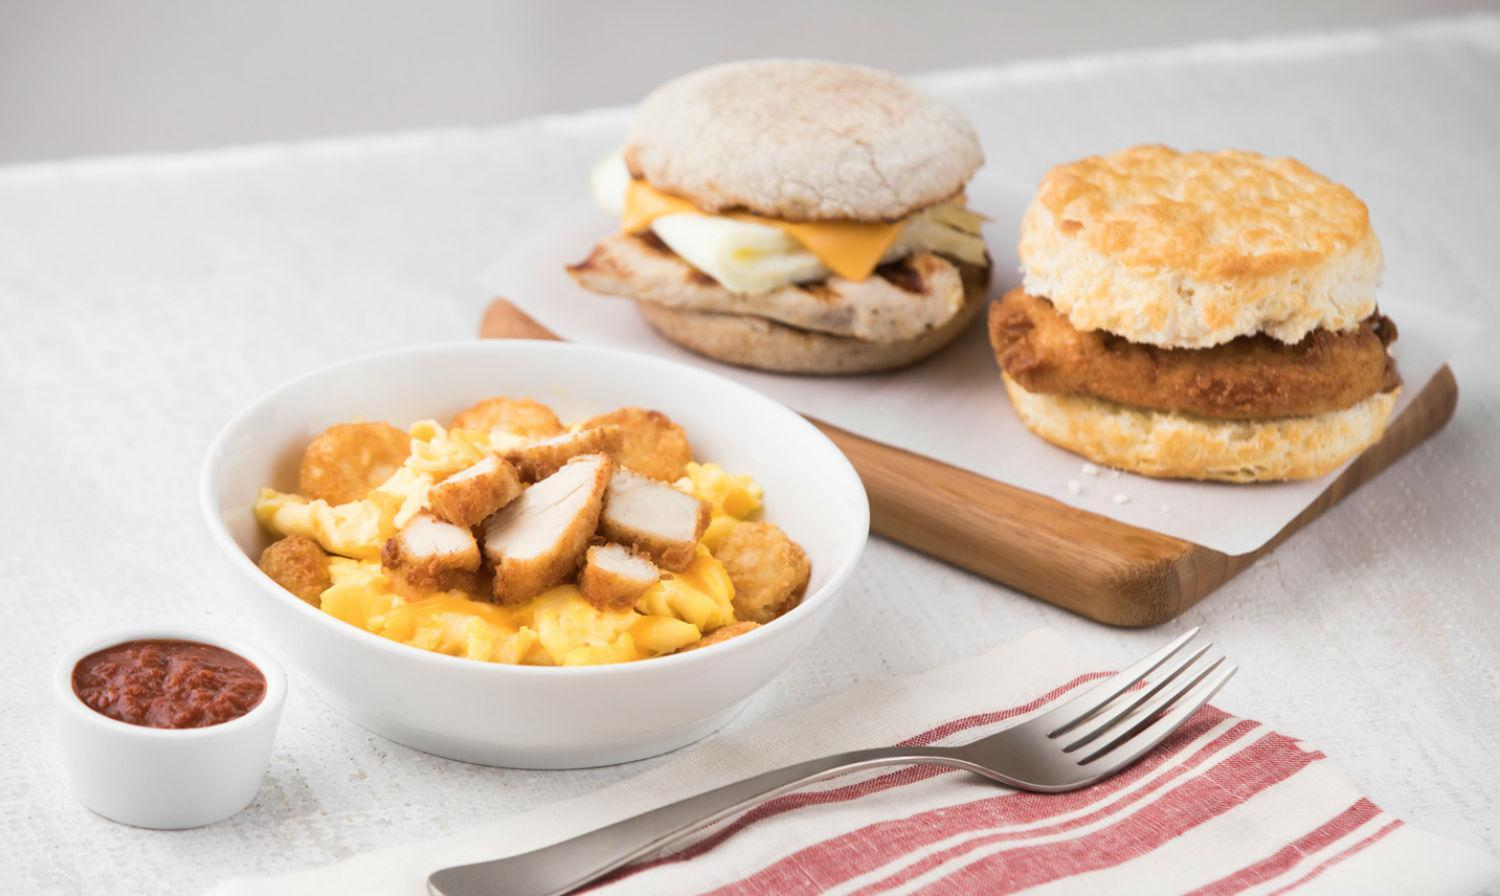 what's on the chick-fil-a breakfast menu?